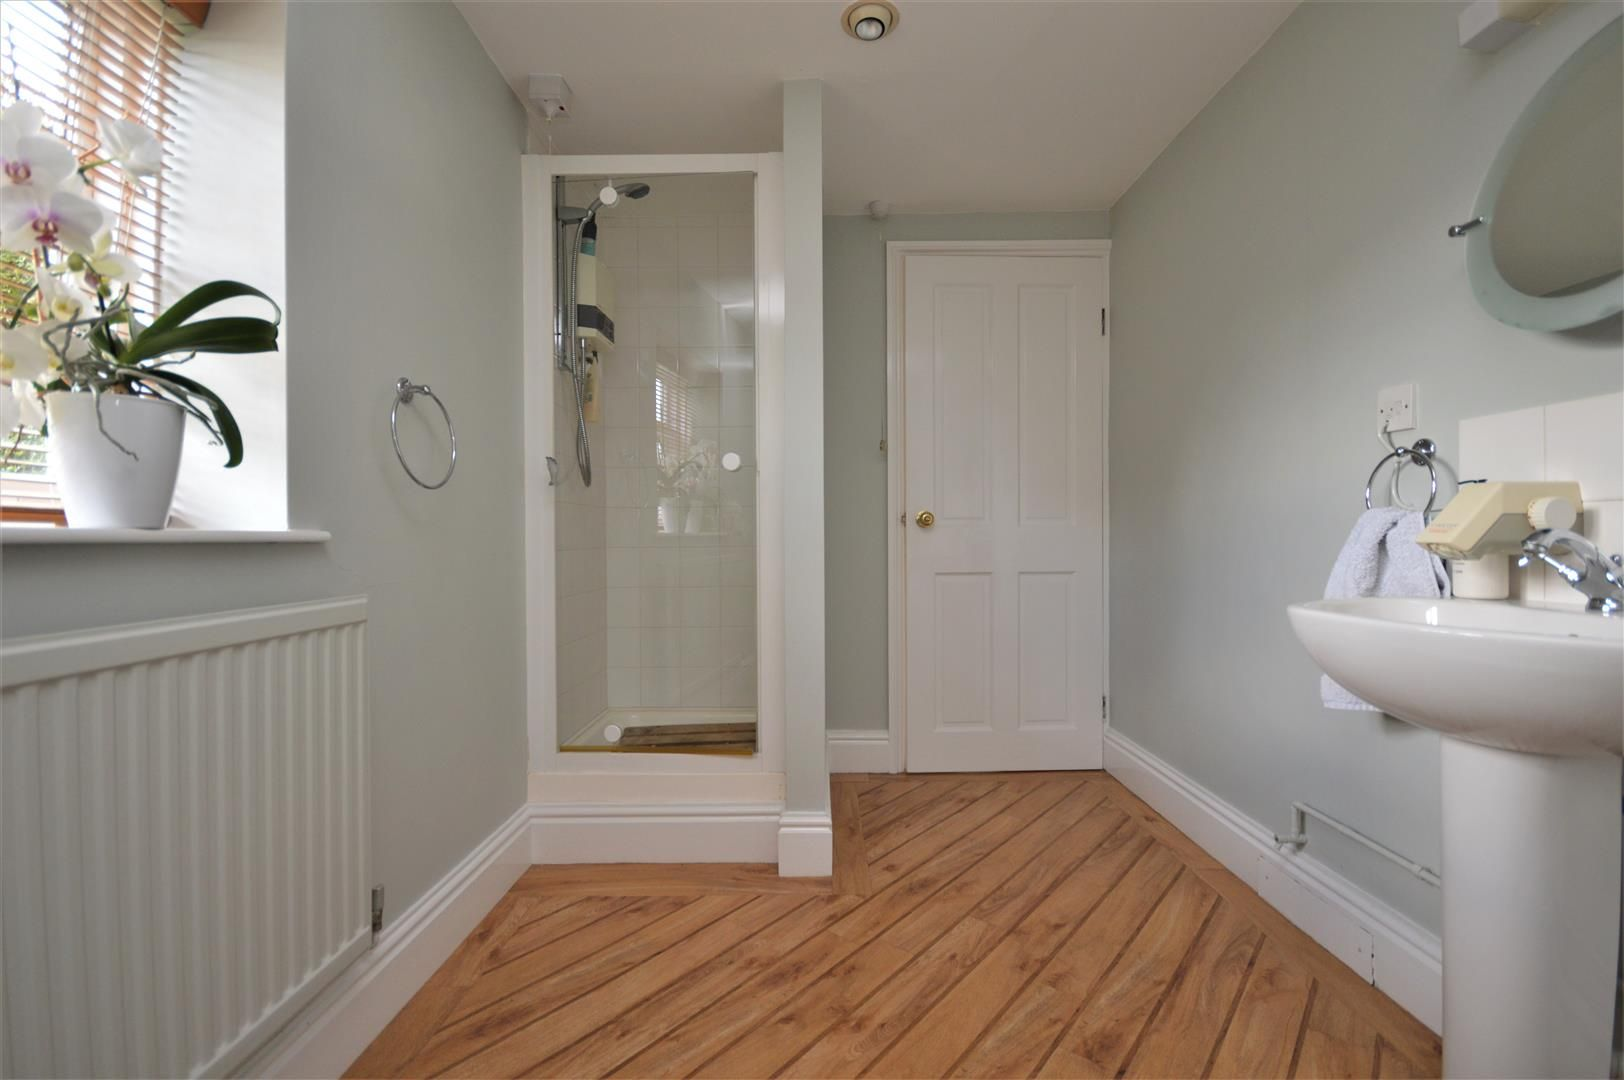 5 bed detached for sale in Stretton Sugwas  - Property Image 25